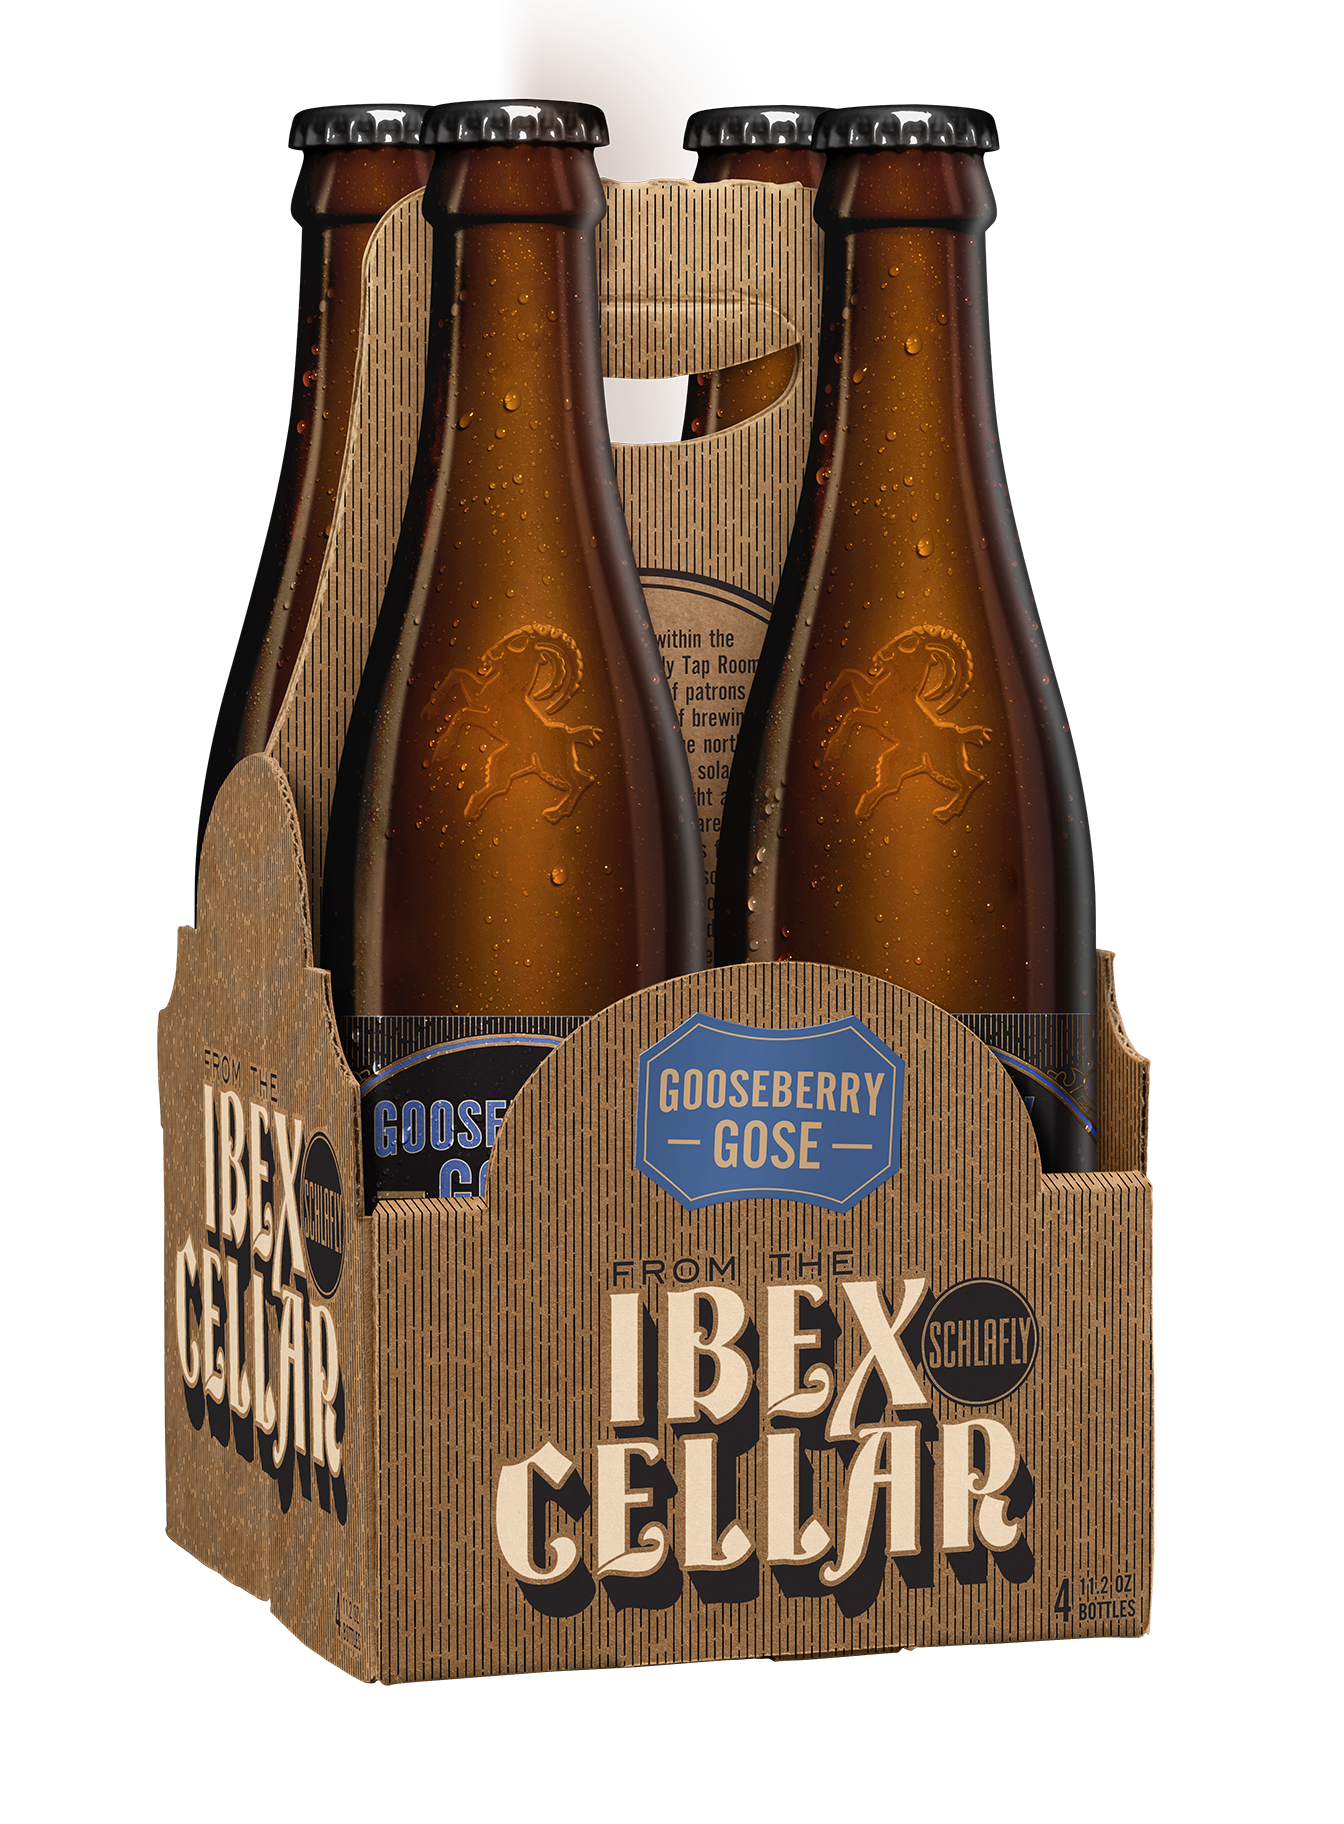 Ibex Cellar: Gooseberry Gose - This sour wheat ale is made with sea salt and coriander; we've added gooseberries for a modern twist on this historical style. It gets its tartness from lactic acid, and the bright, herbal character from coriander. Gooseberries provide a hint of fruitiness, which pairs nicely with the sour, salty profile of this beer. This quirky, historical style is low in alcohol, tart and very refreshing.